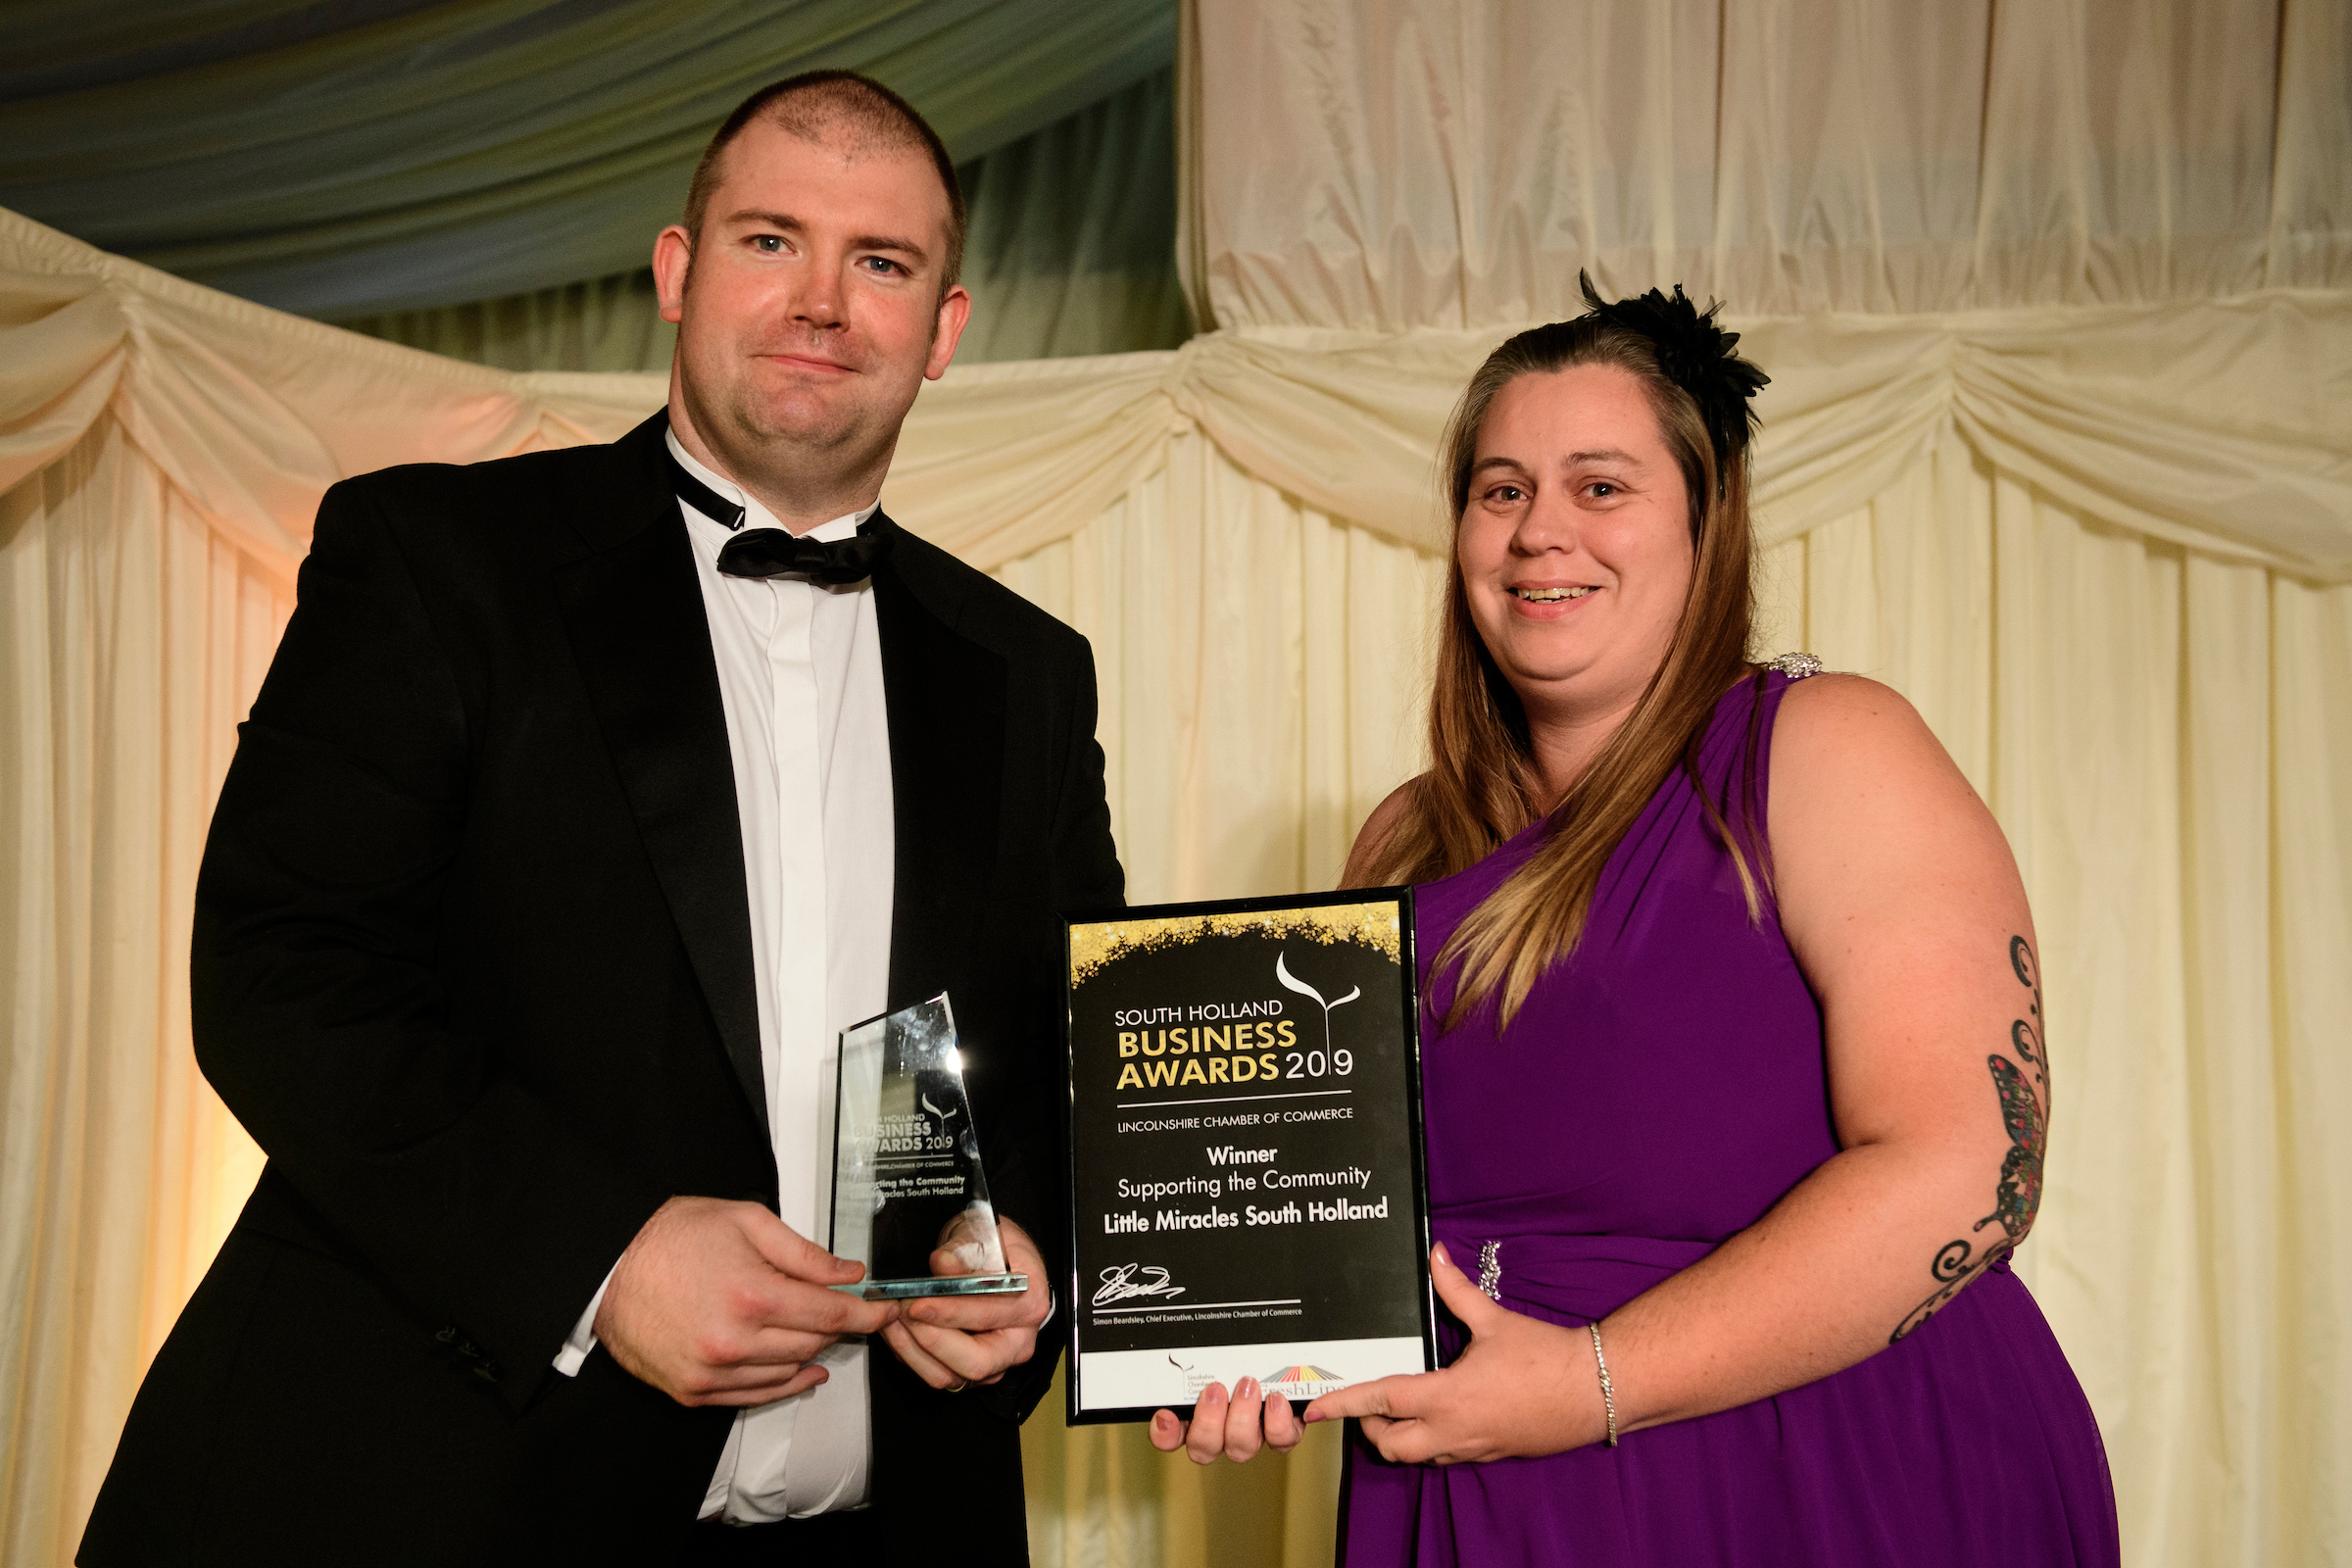 A man and woman in eveningwear holding certificate and trophy at the South Holland Business Awards 2019